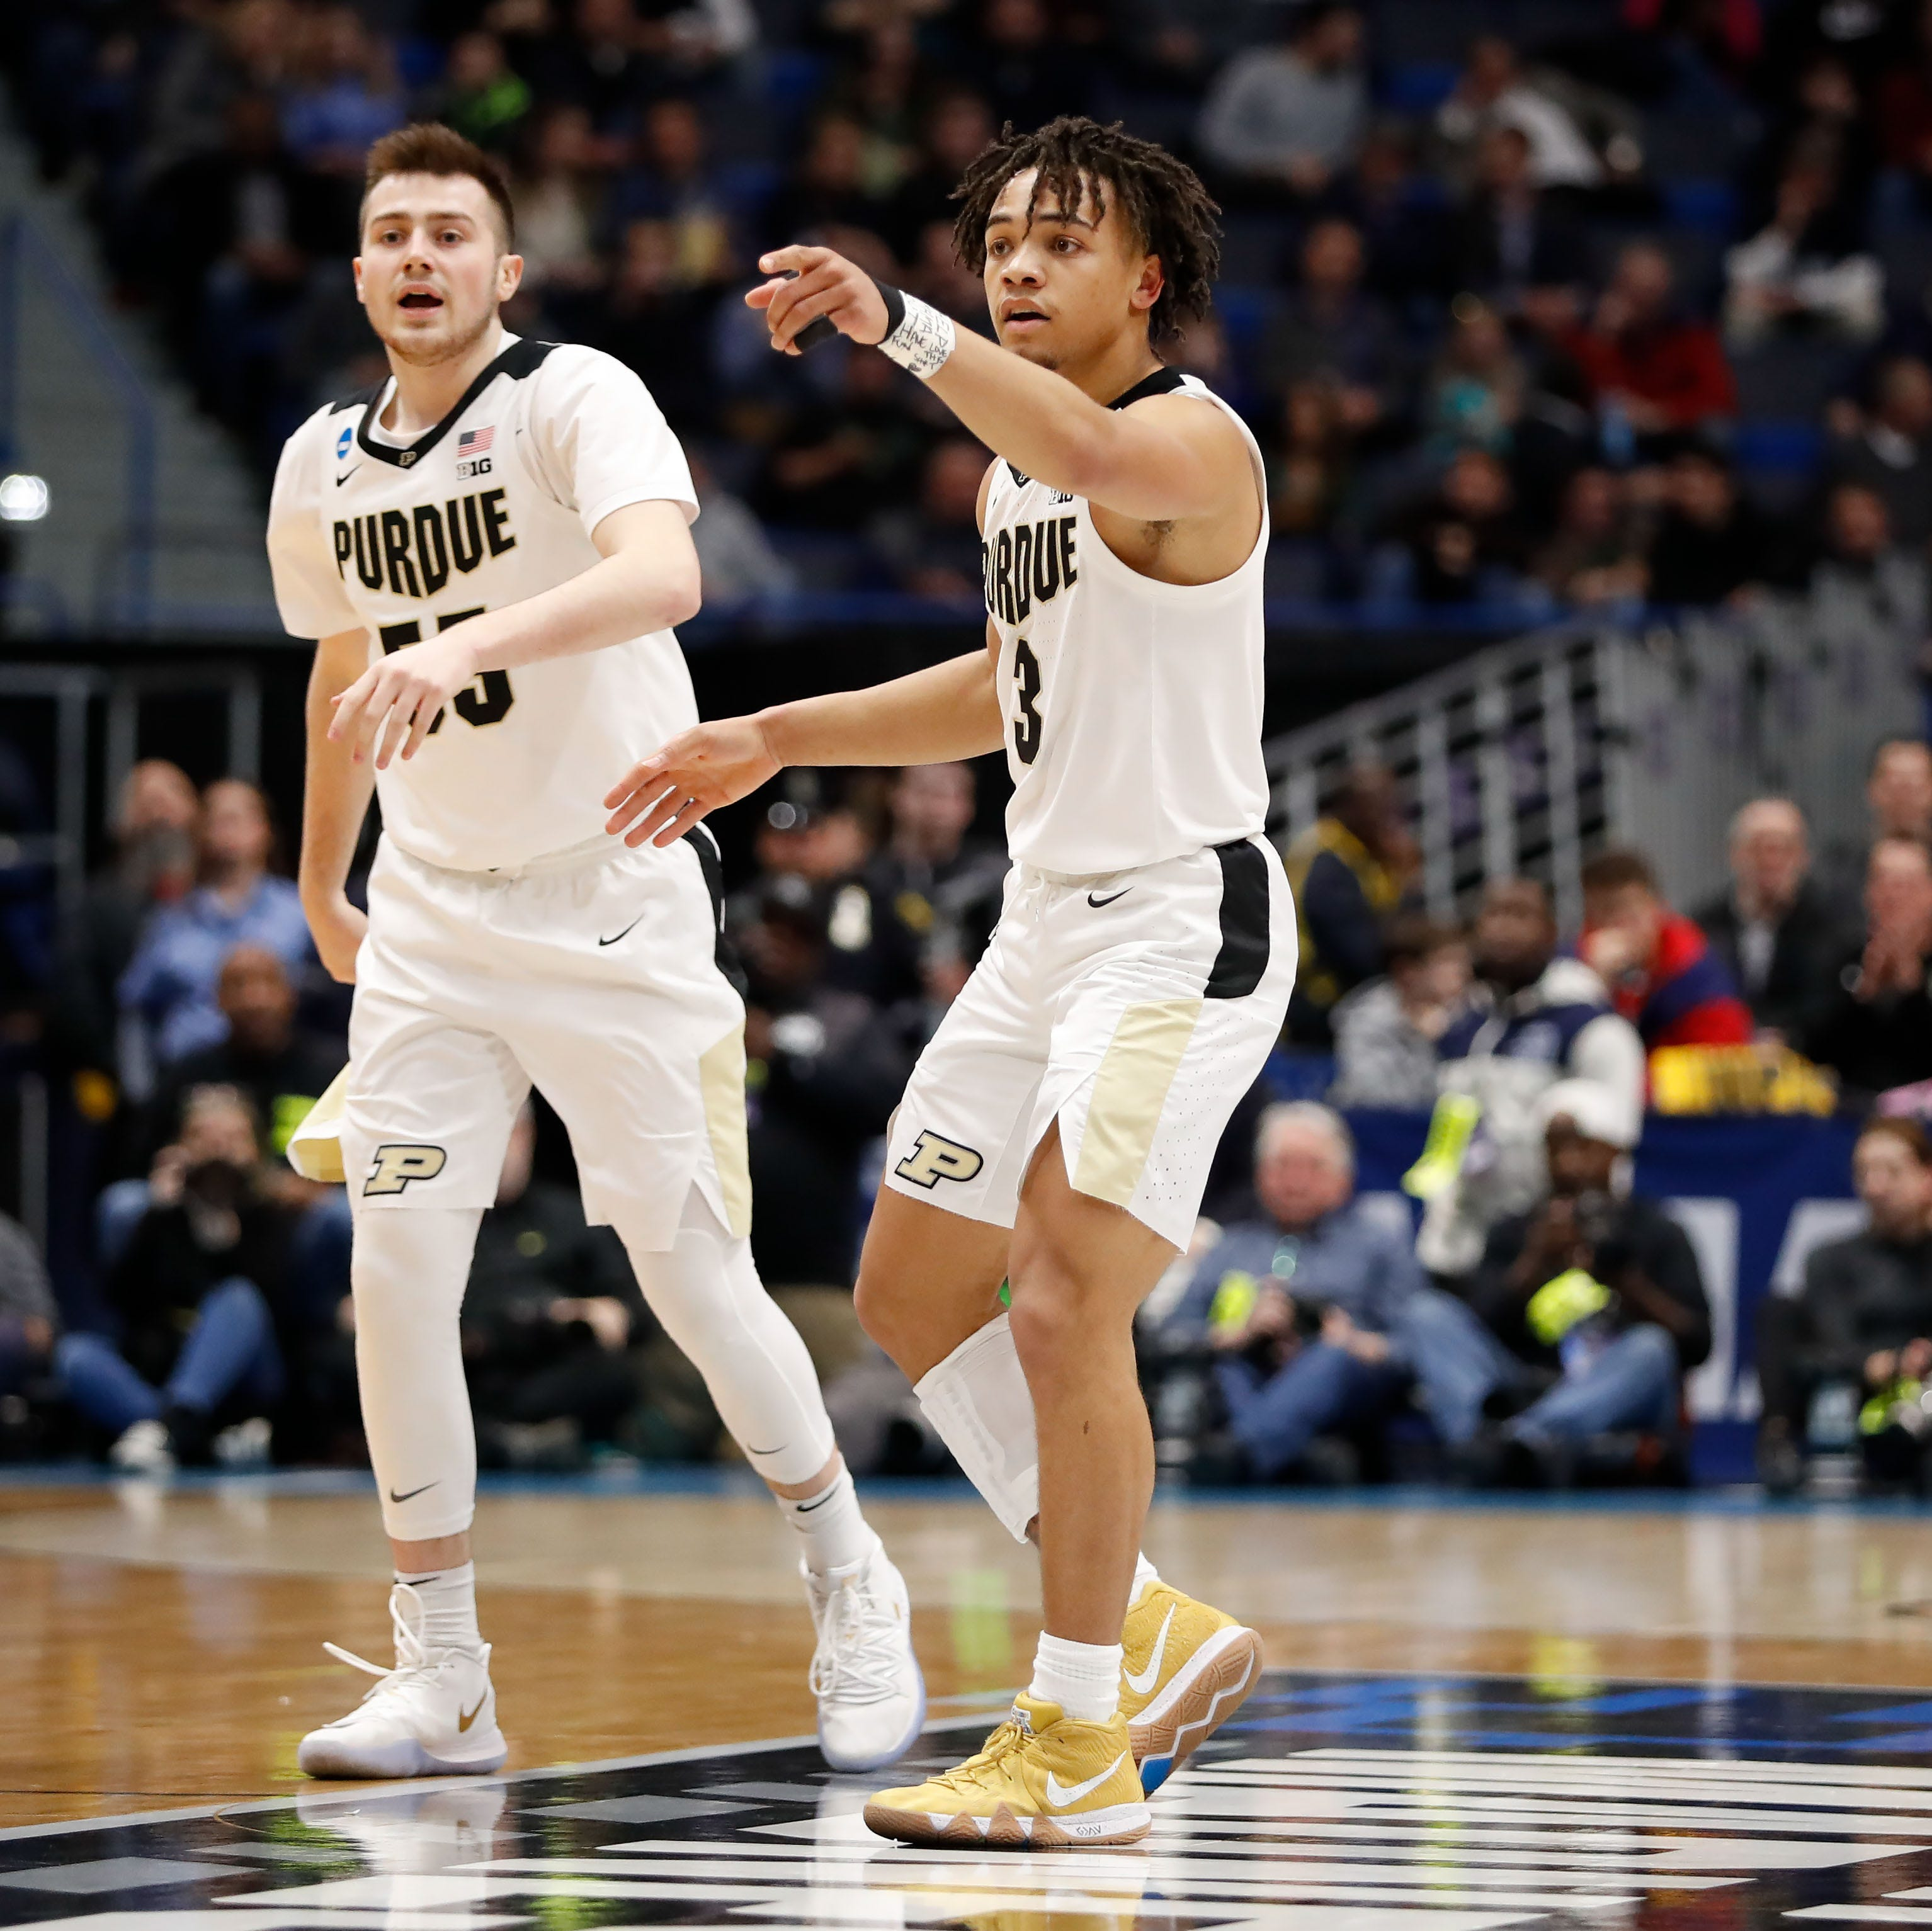 As it happened: How Purdue beat Old Dominion in NCAA tournament